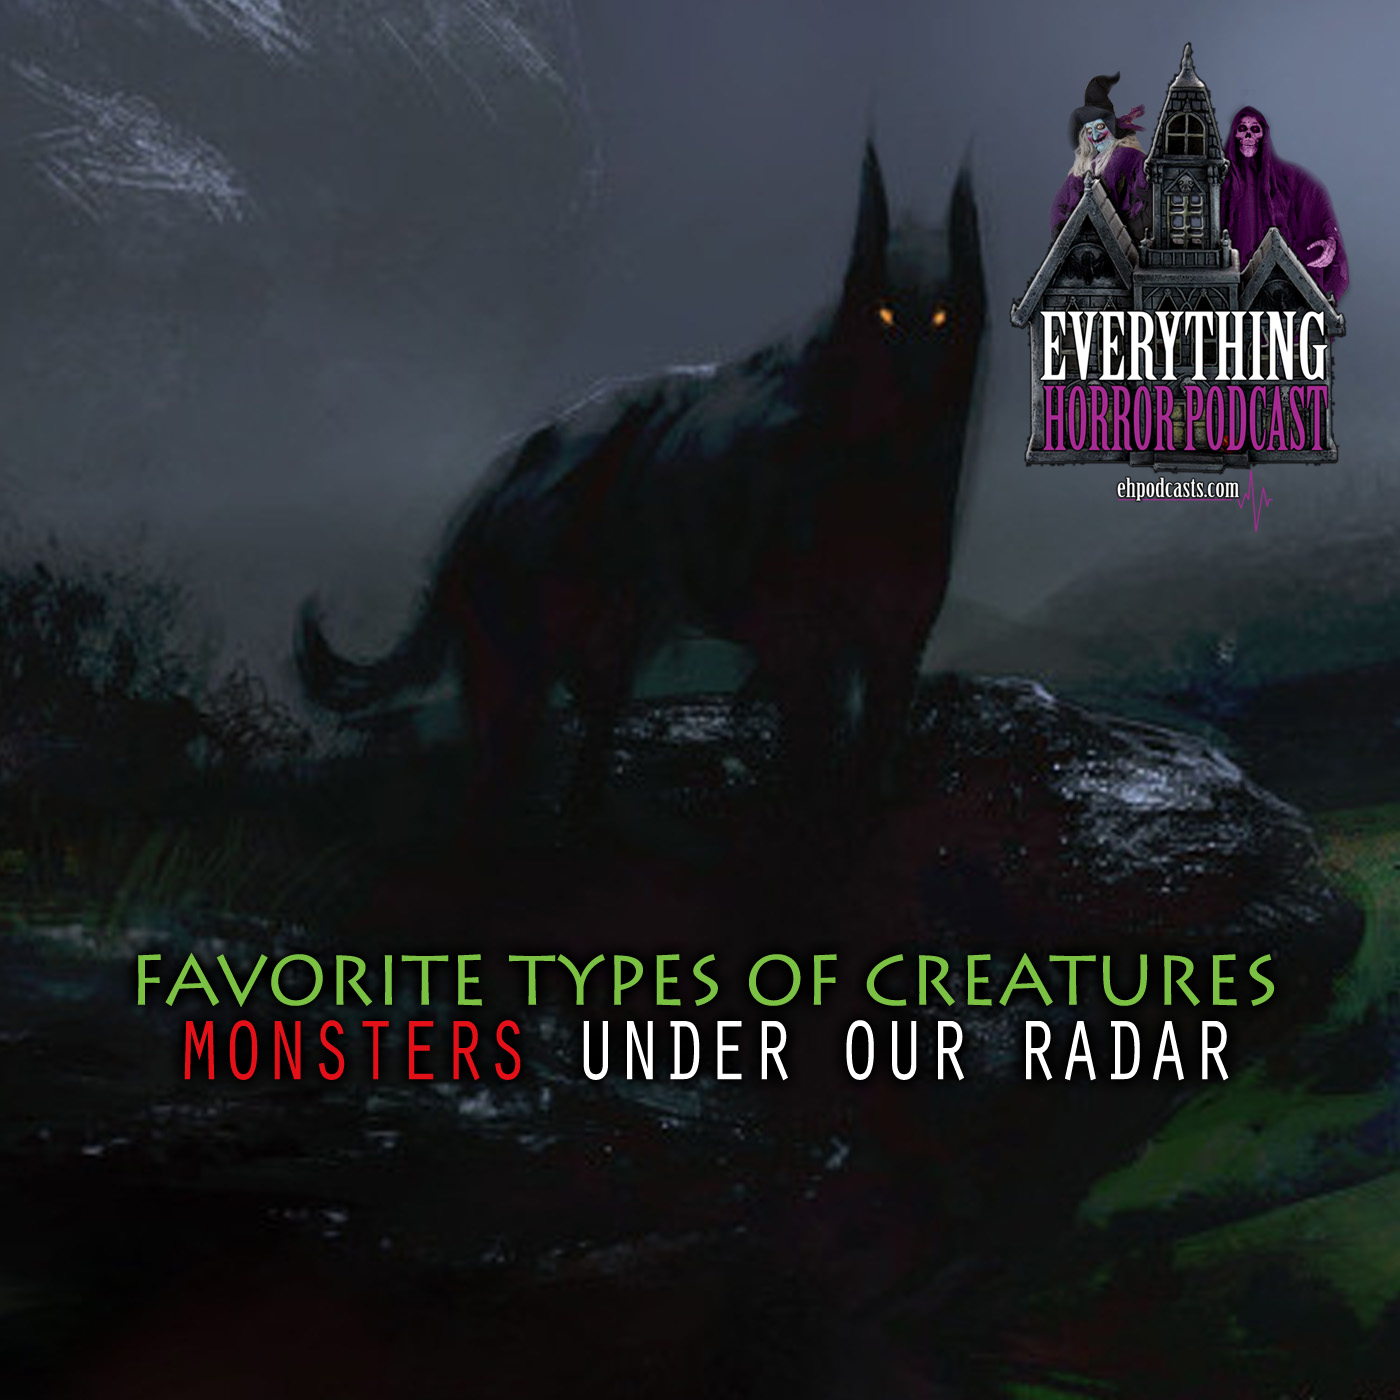 Favorite Types of Creatures | Monsters Under Our Radar